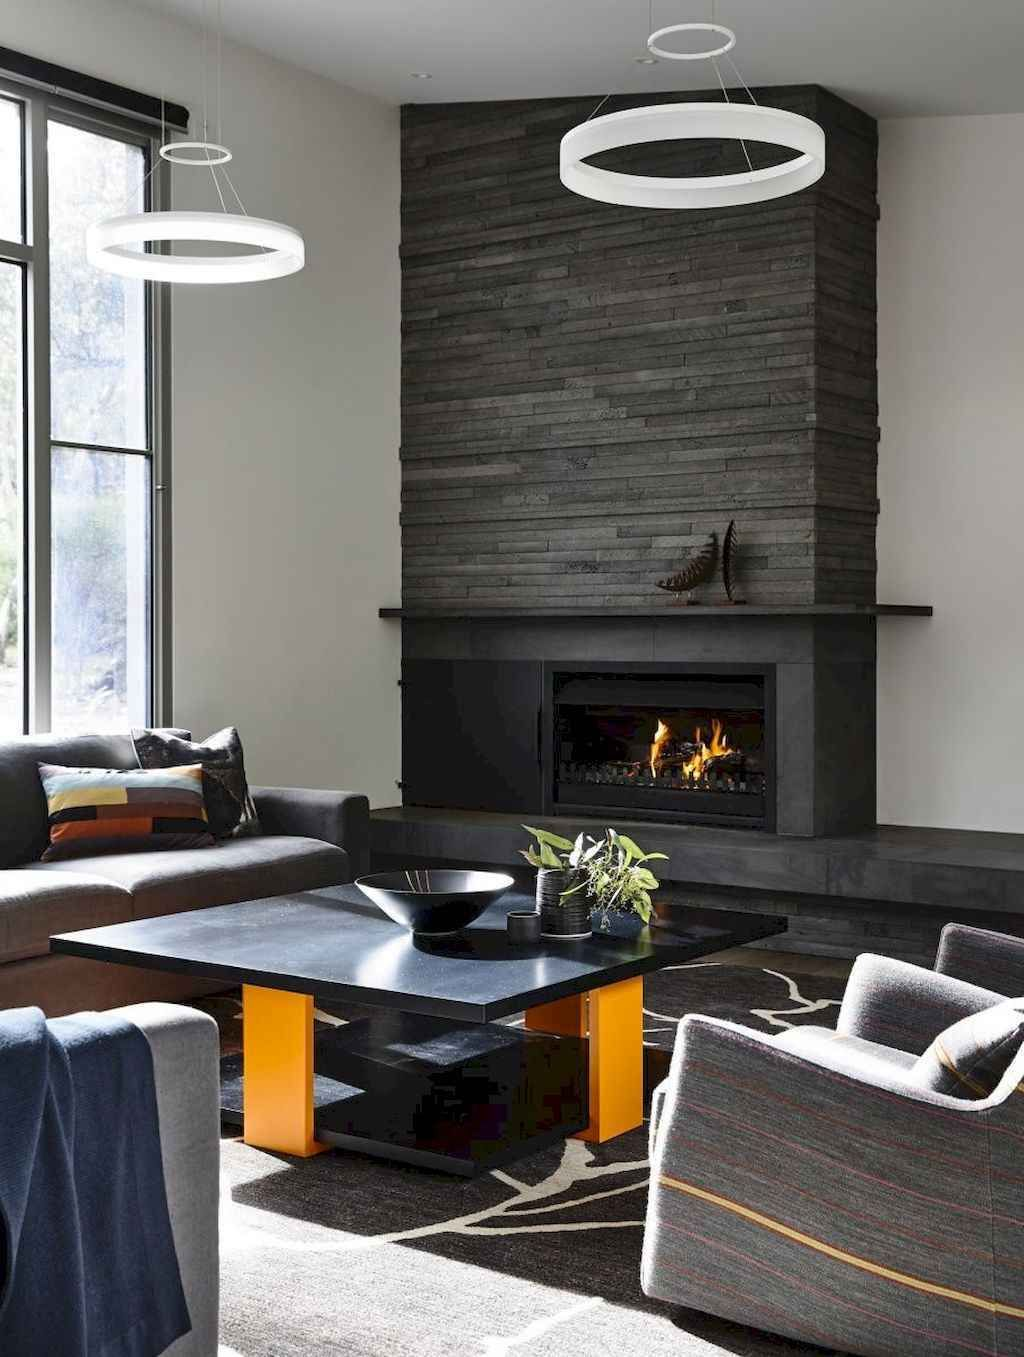 08 small fireplace makeover decor ideas  modern stone